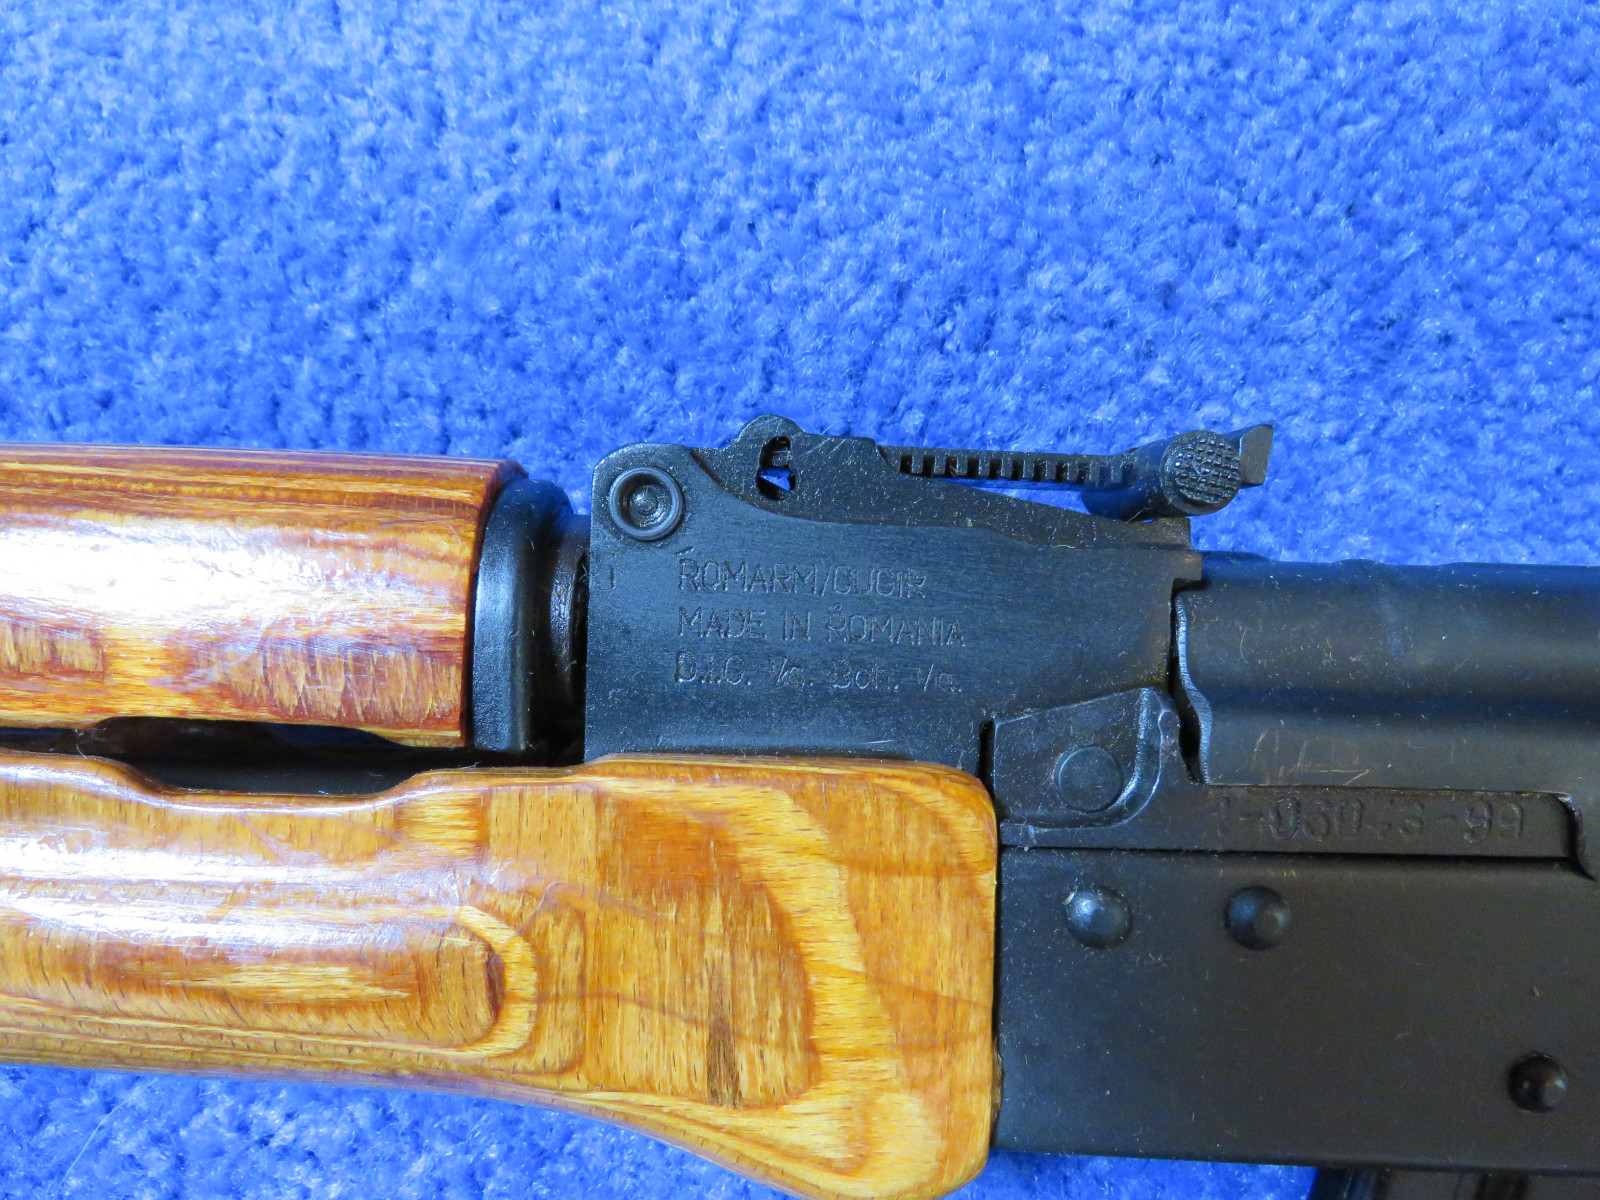 Romak 990 Semi-Automatic Rifle 7.62x39mm  1-060Z3-99 - Image 4